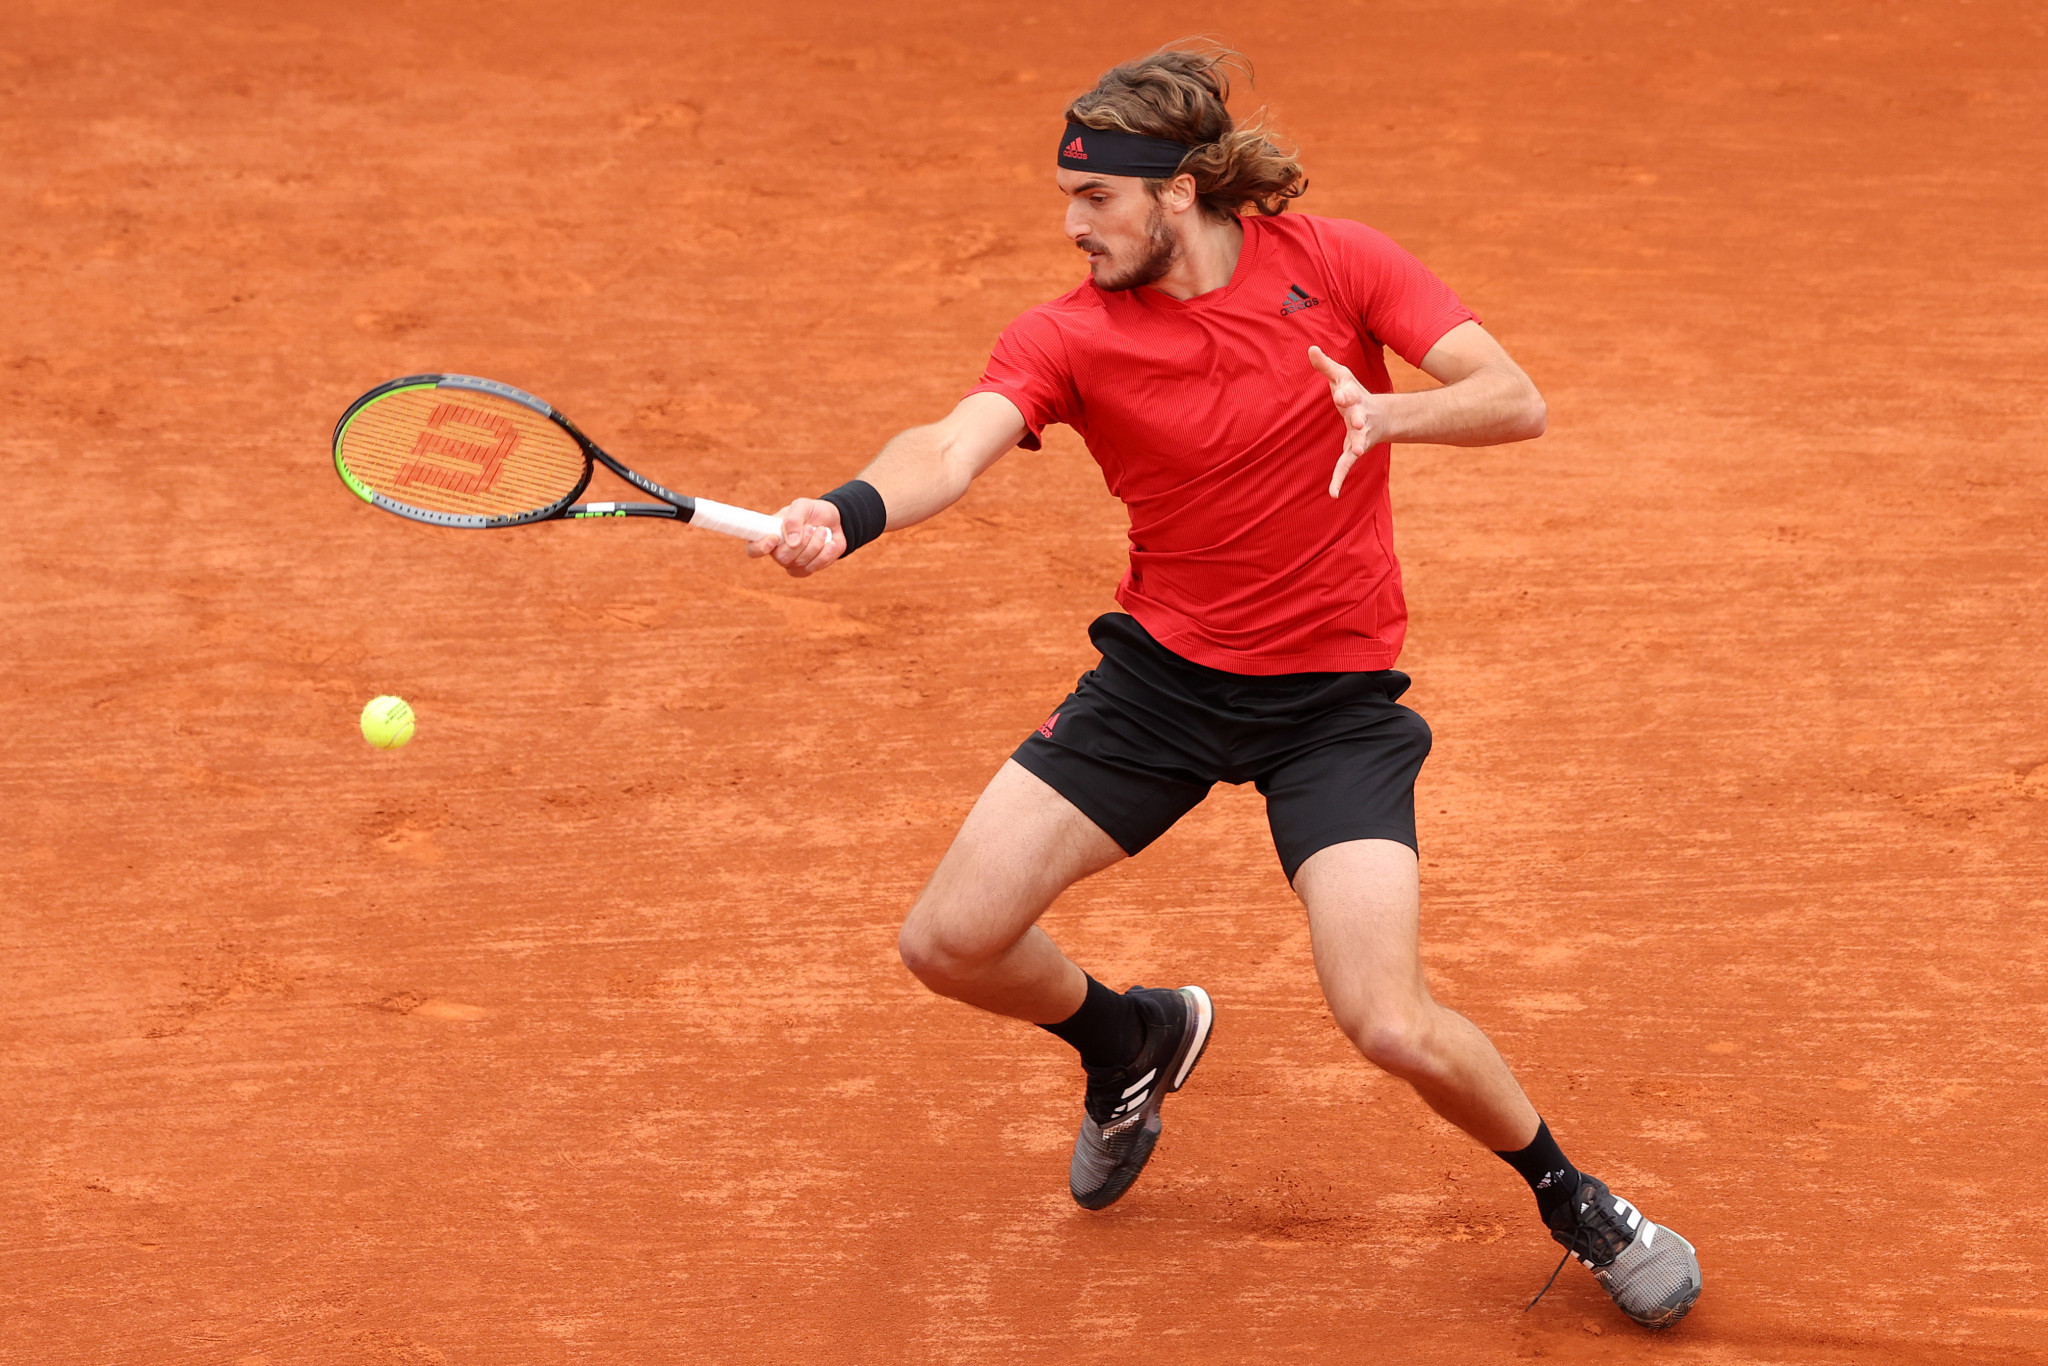 Stefanos Tsitsipas took just over an hour to beat Dan Evans and reach the final of the Monte-Carlo Masters ©Getty Images